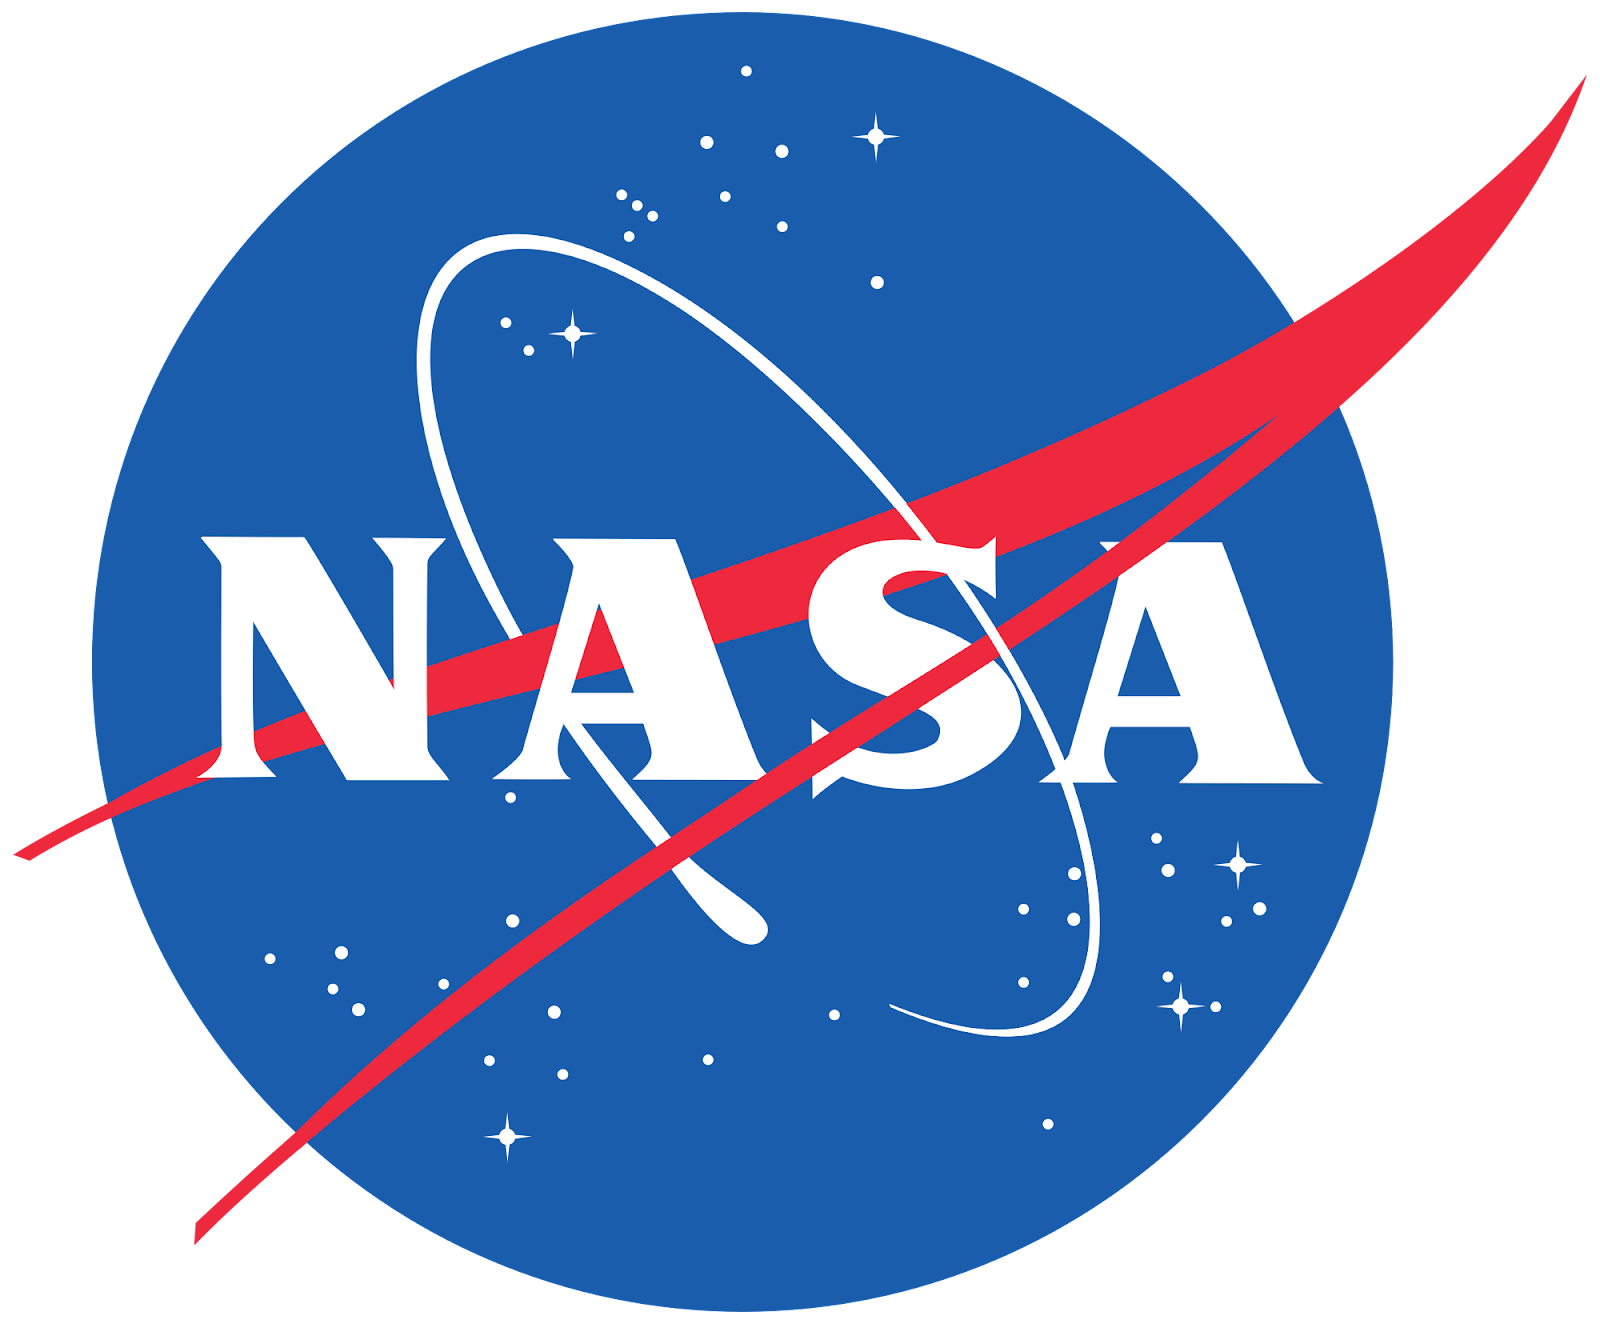 https://upload.wikimedia.org/wikipedia/commons/thumb/e/e5/NASA_logo.svg/2000px-NASA_logo.svg.png